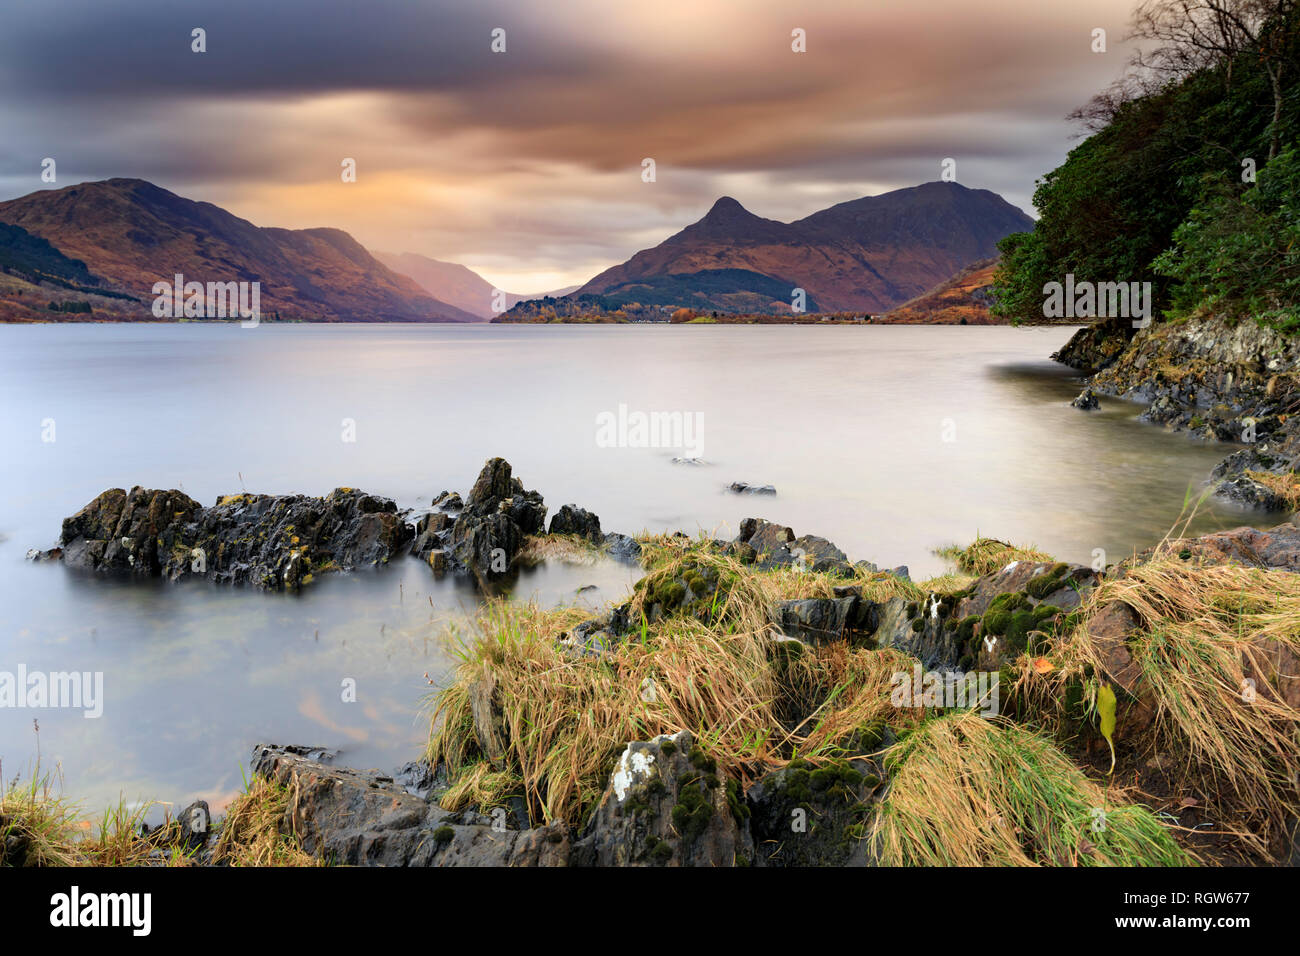 Loch Leven in Scotland with the Pap of Glencoe in the distance. - Stock Image